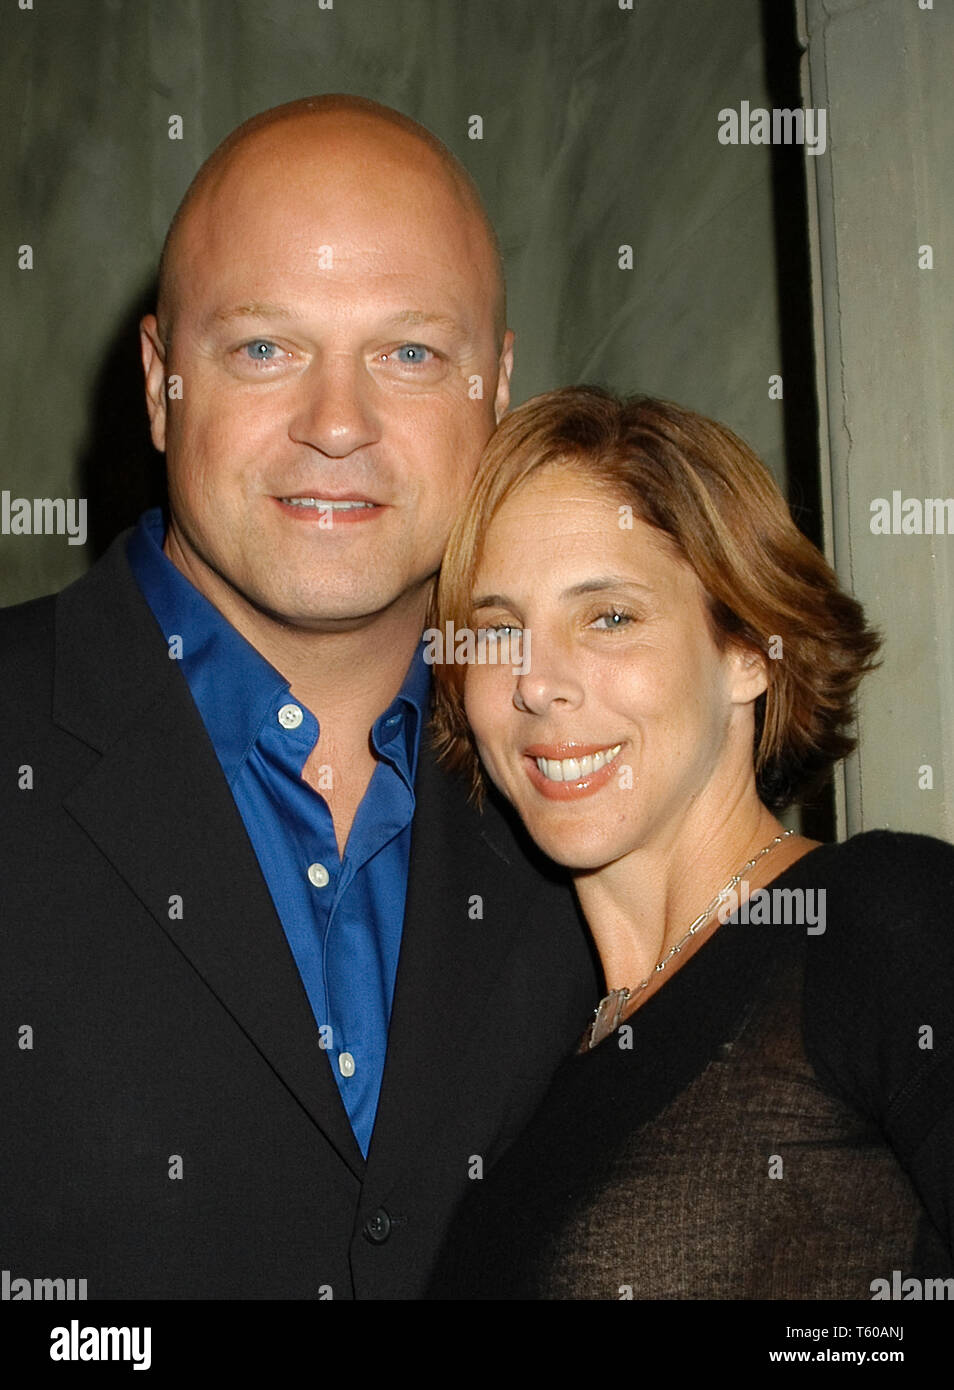 Michael Chiklis & Wife Michelle at the Academy of Television Arts & Sciences dinner honoring the 55th Annual Primetime Emmy Awards Nominees for Outstanding Performing Talent at Spagos in Beverly Hills, CA. The event took place on Thursday, September 18, 2003. Photo by: SBM / PictureLux  File Reference # 33790_1115SBMPLX - Stock Image